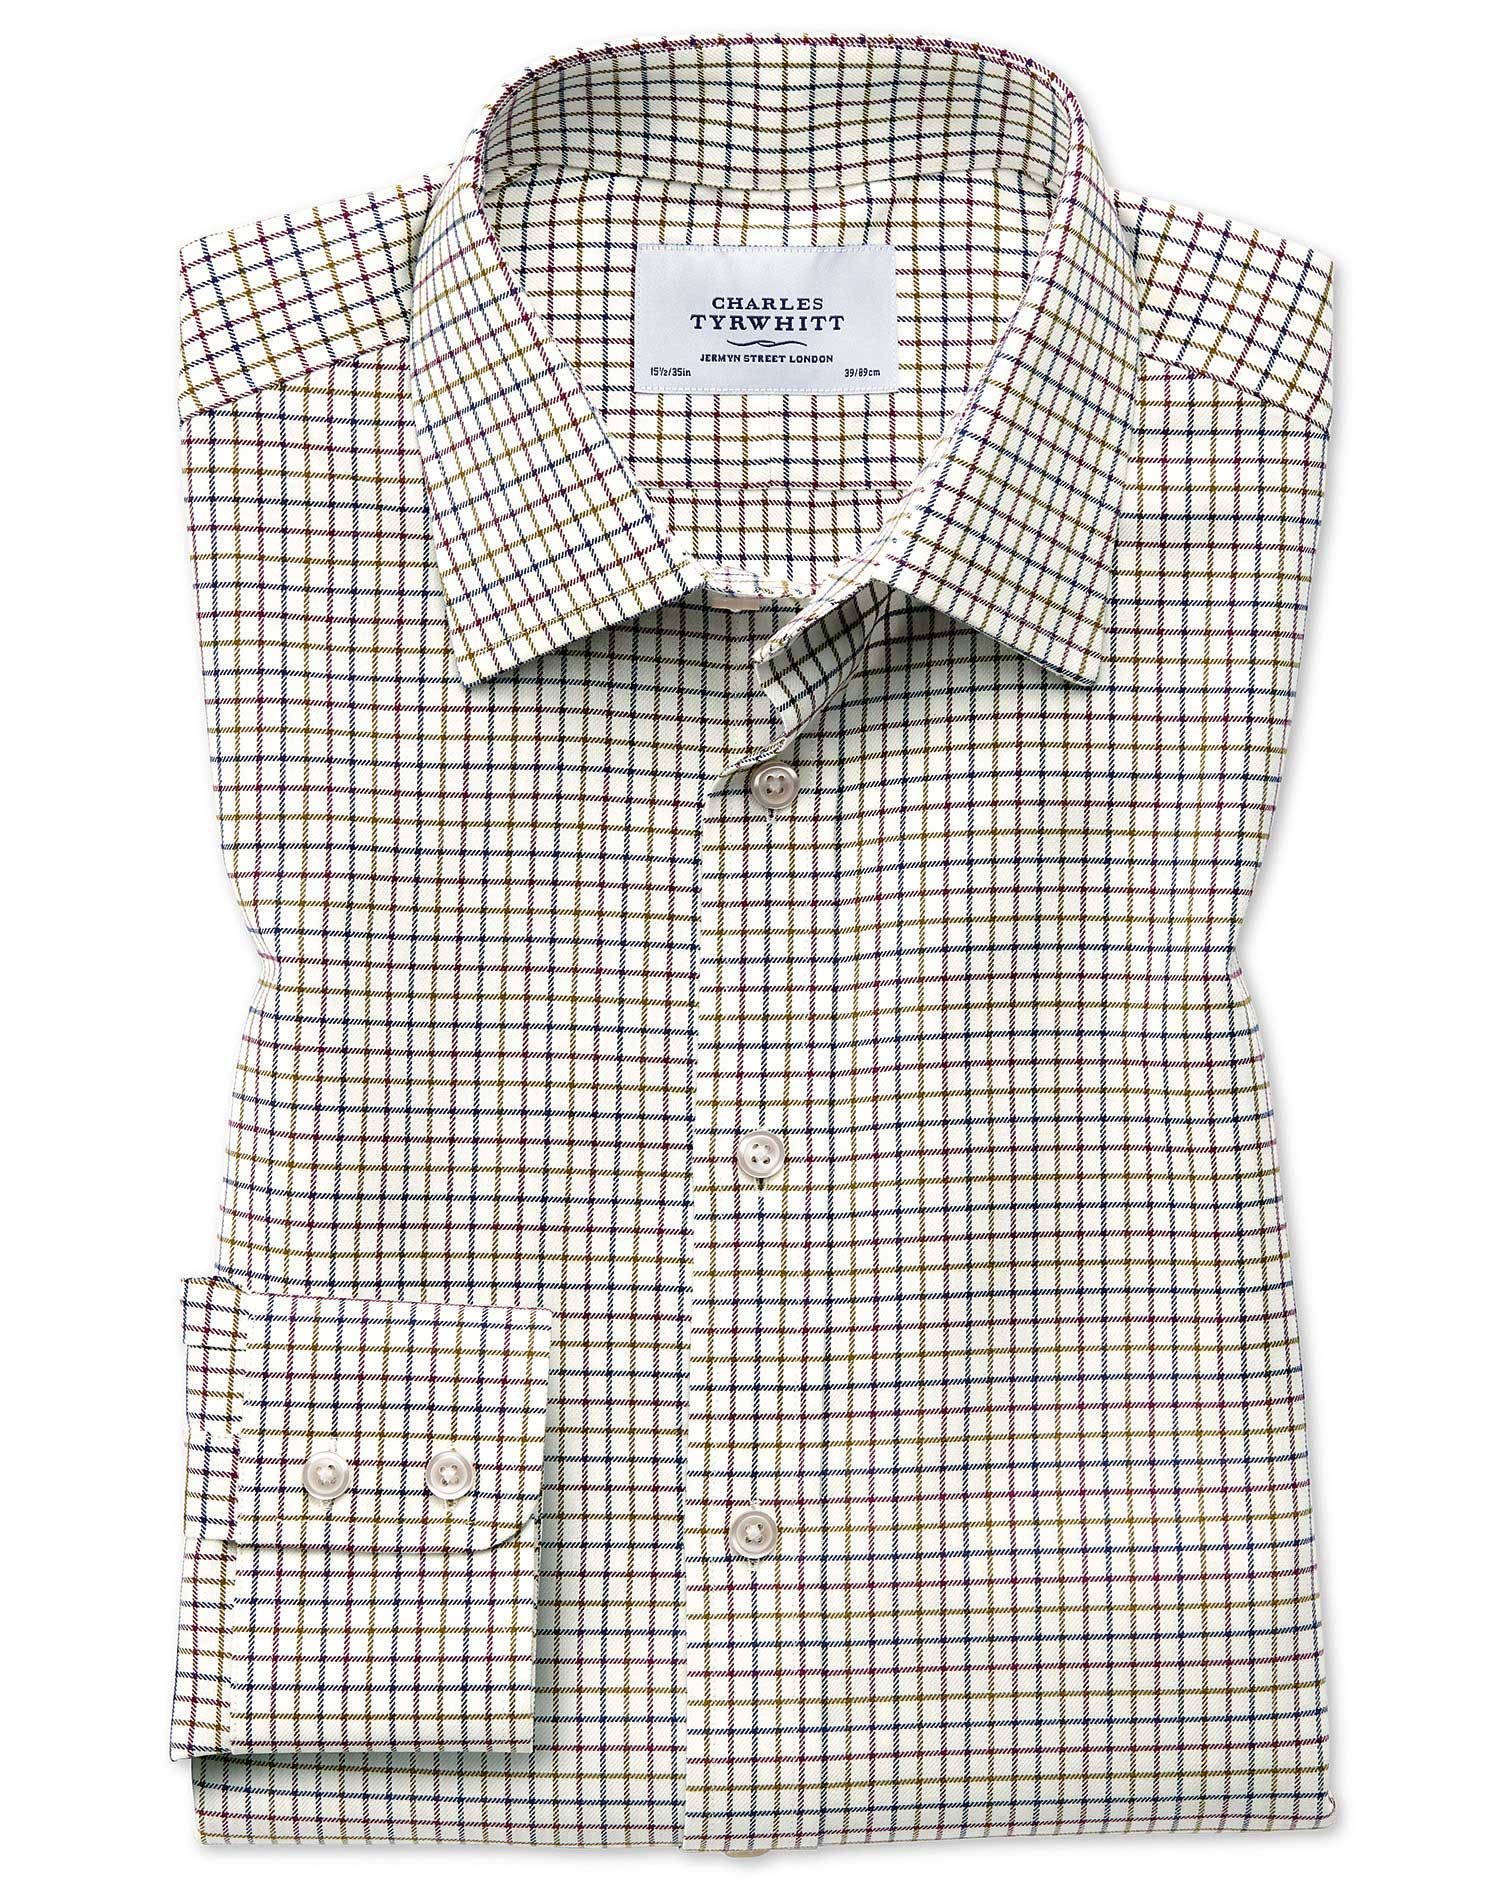 Slim Fit Country Check Purple and Green Cotton Formal Shirt Single Cuff Size 17.5/34 by Charles Tyrw